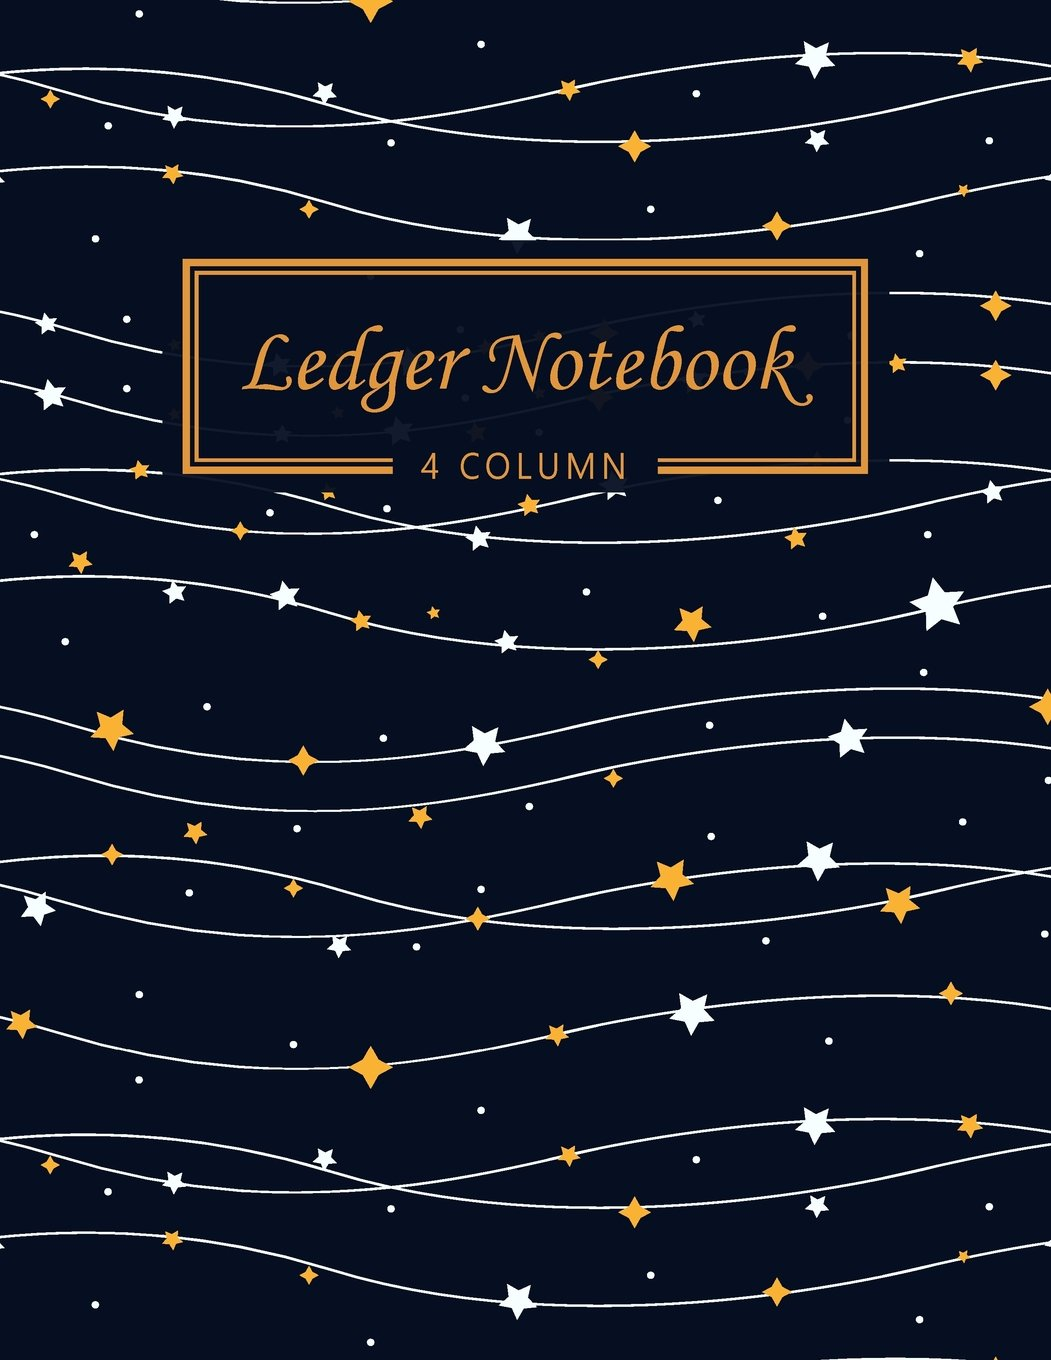 Download Ledger Notebook: 4 Column Ledger Record Book Account Journal Accounting Ledger Notebook Business Bookkeeping Home Office School 8.5x11 Inches 100 ... Star (Accounting Ledger Paper) (Volume 3) PDF